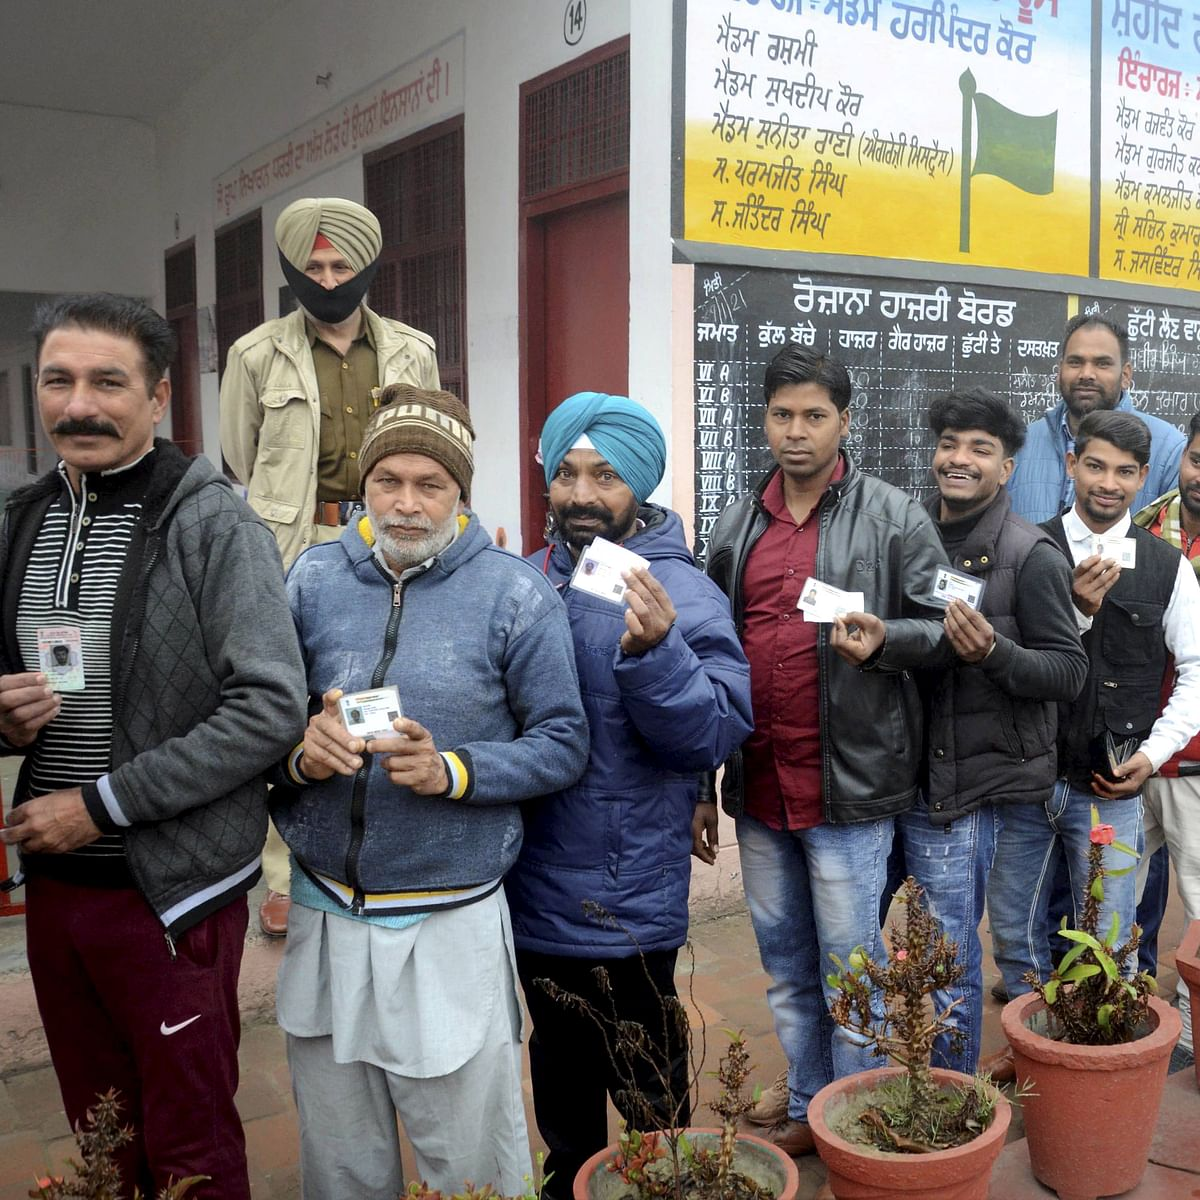 Punjab Municipal Elections 2021: 15.74% voter turnout recorded till 10 am